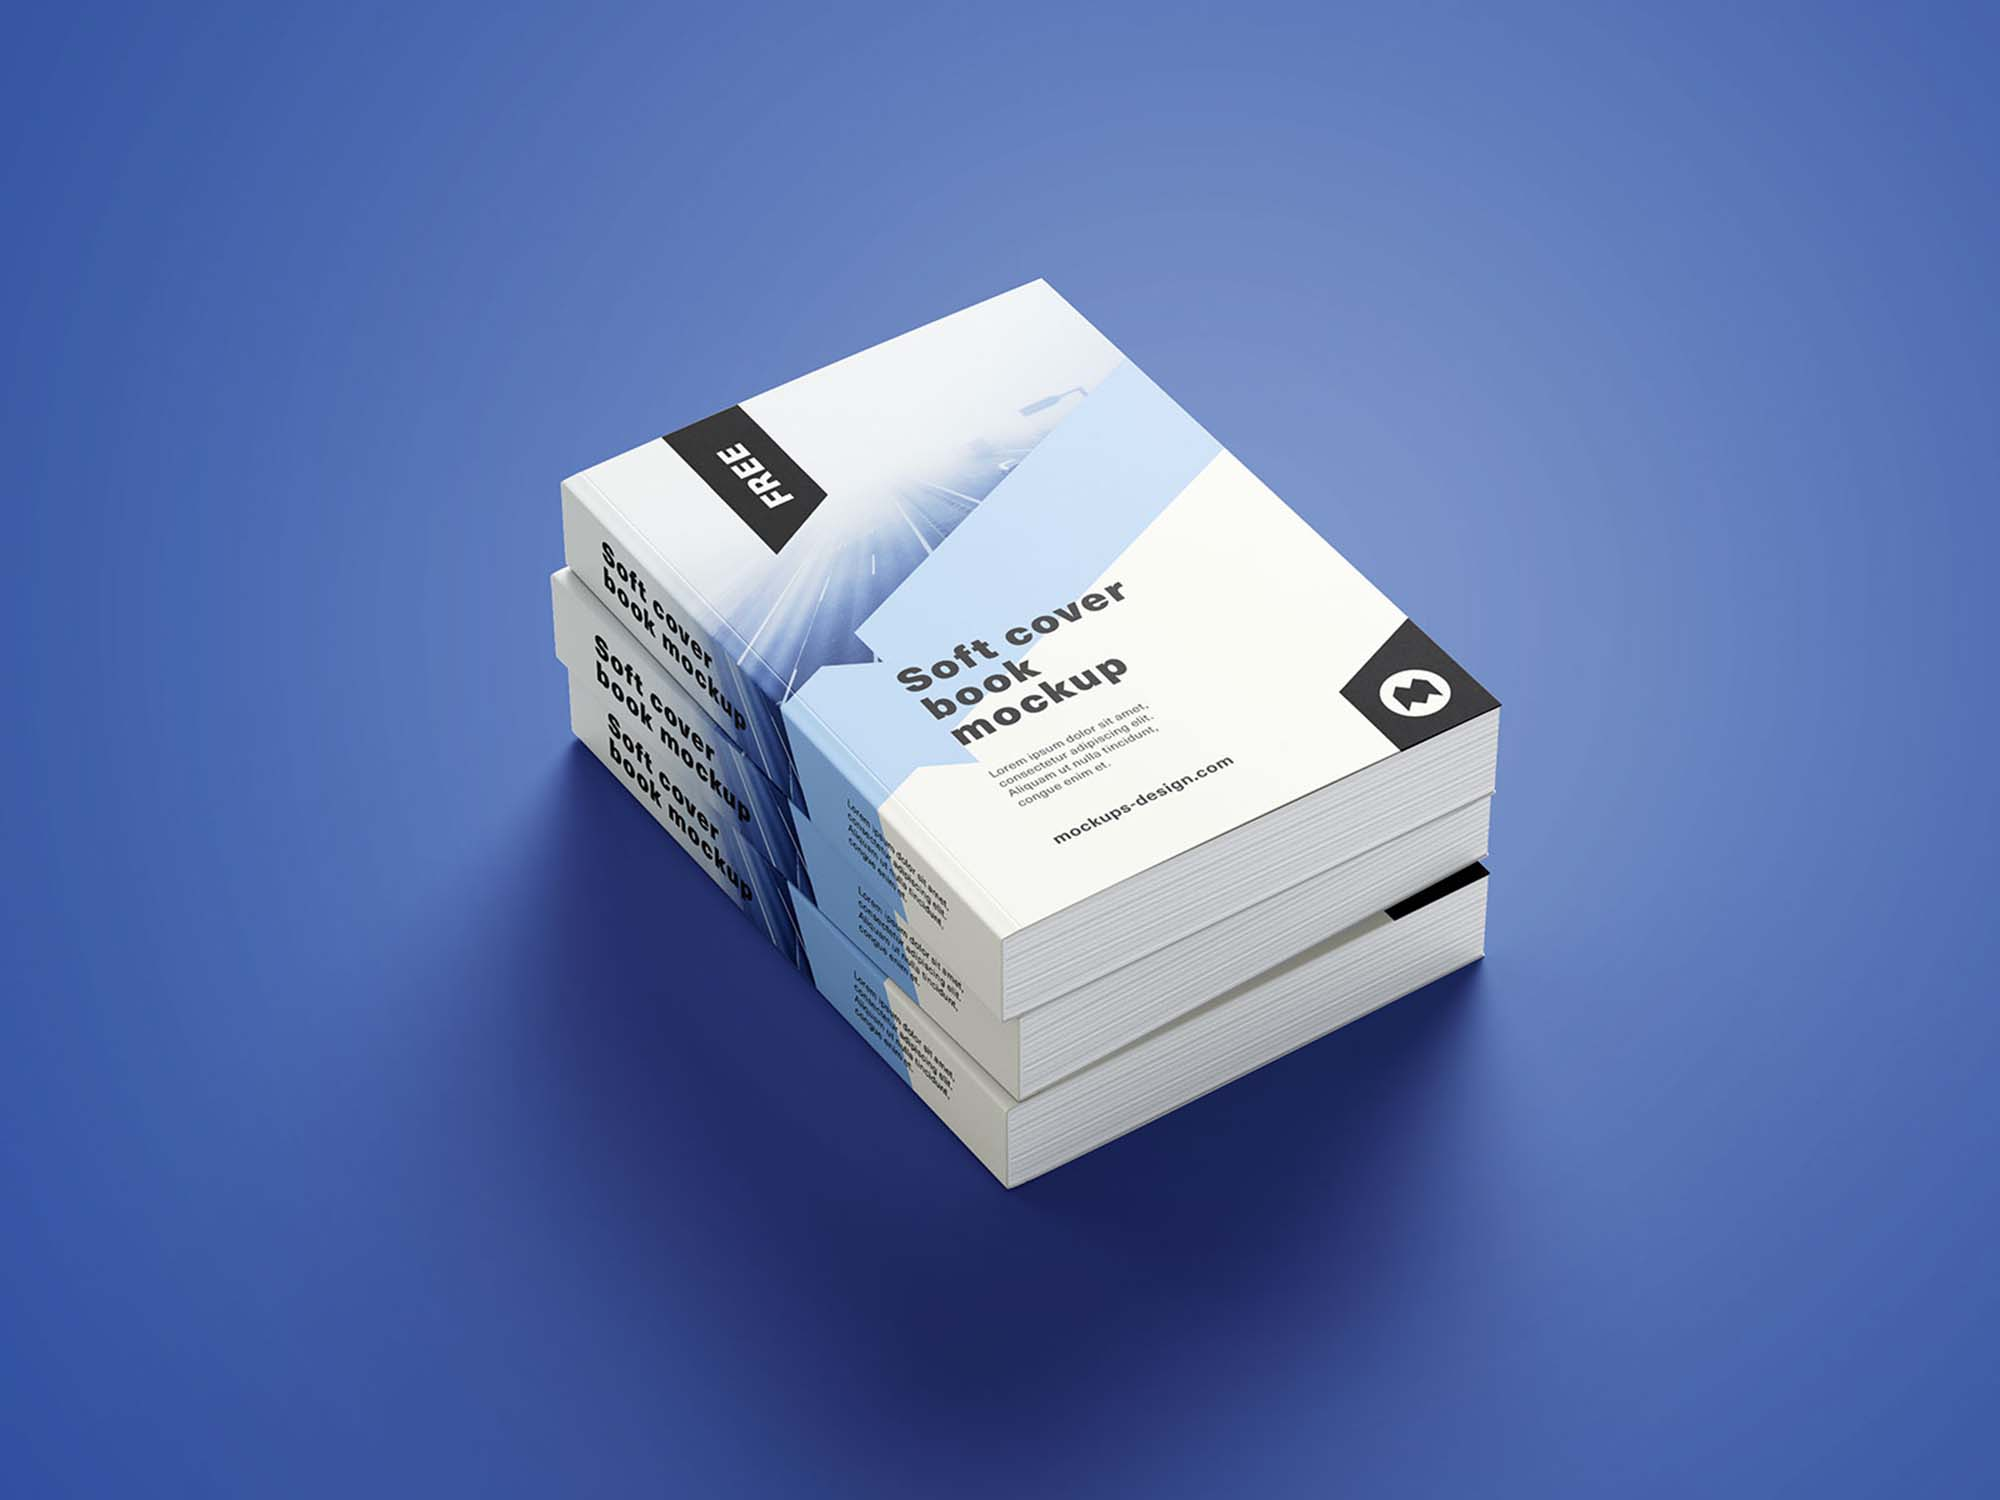 Free Softcover Book Mockup Psd